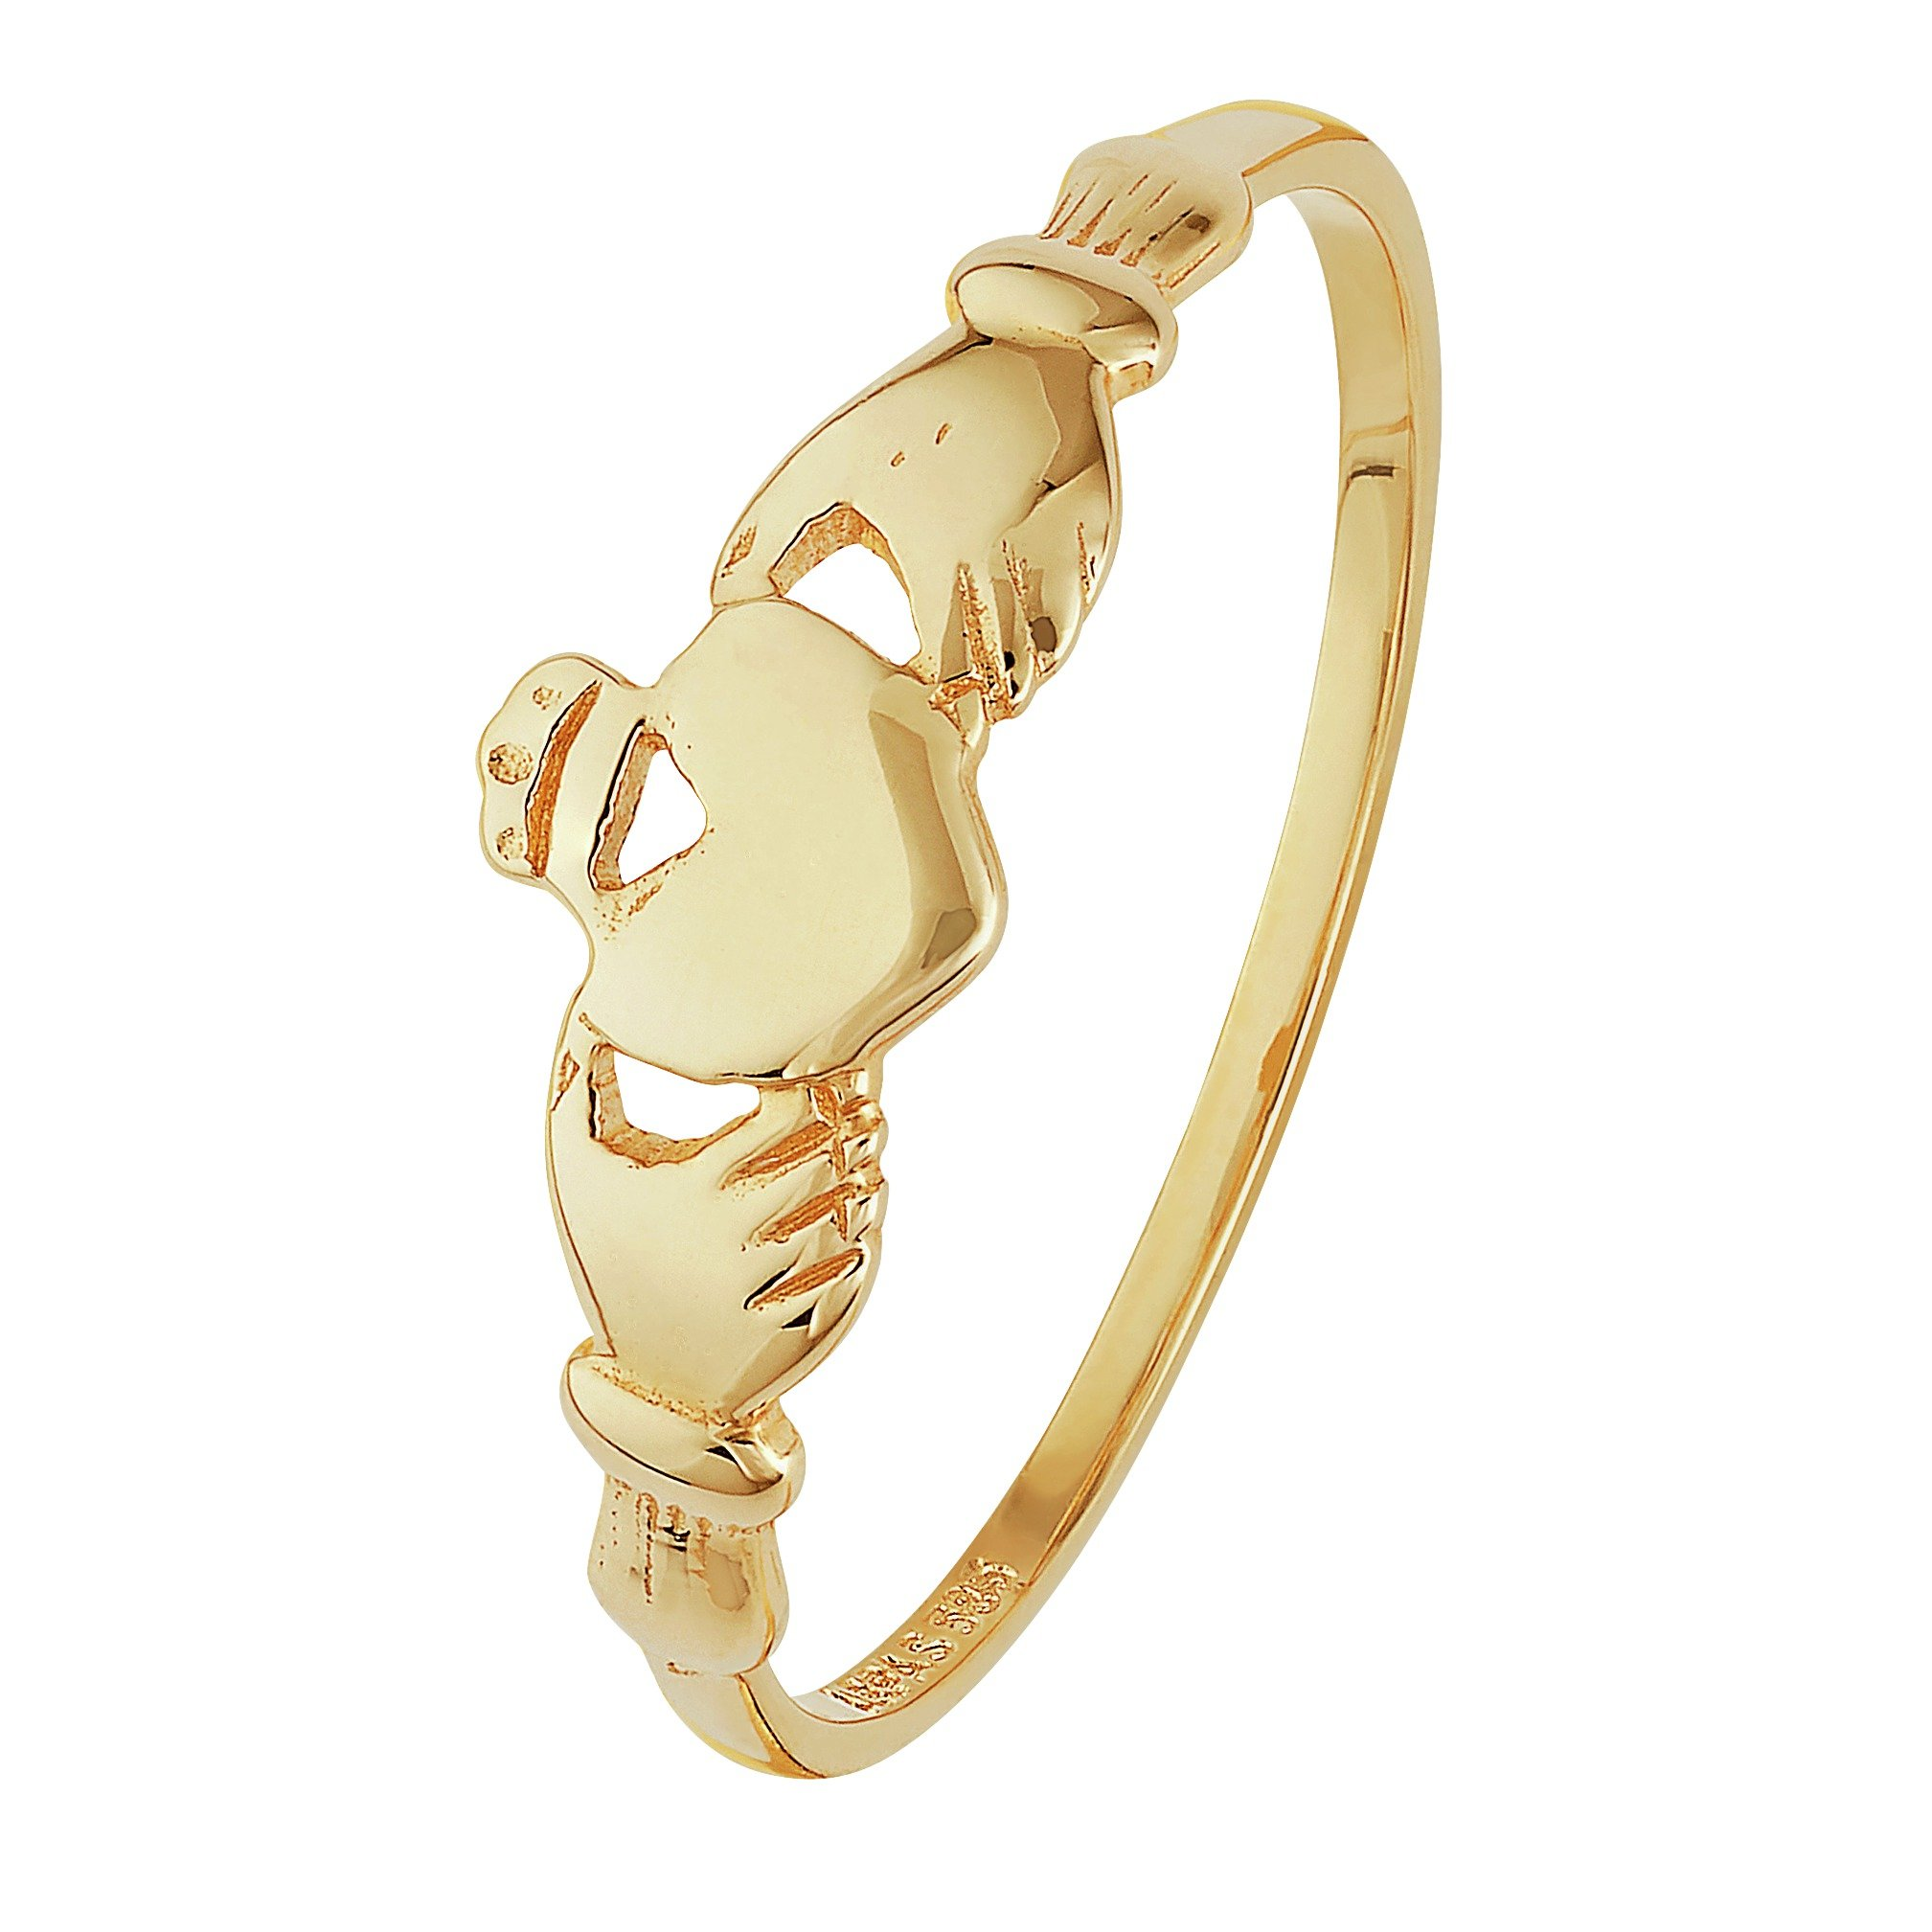 Buy Revere 9ct Gold Claddagh Ring at Argos Your line